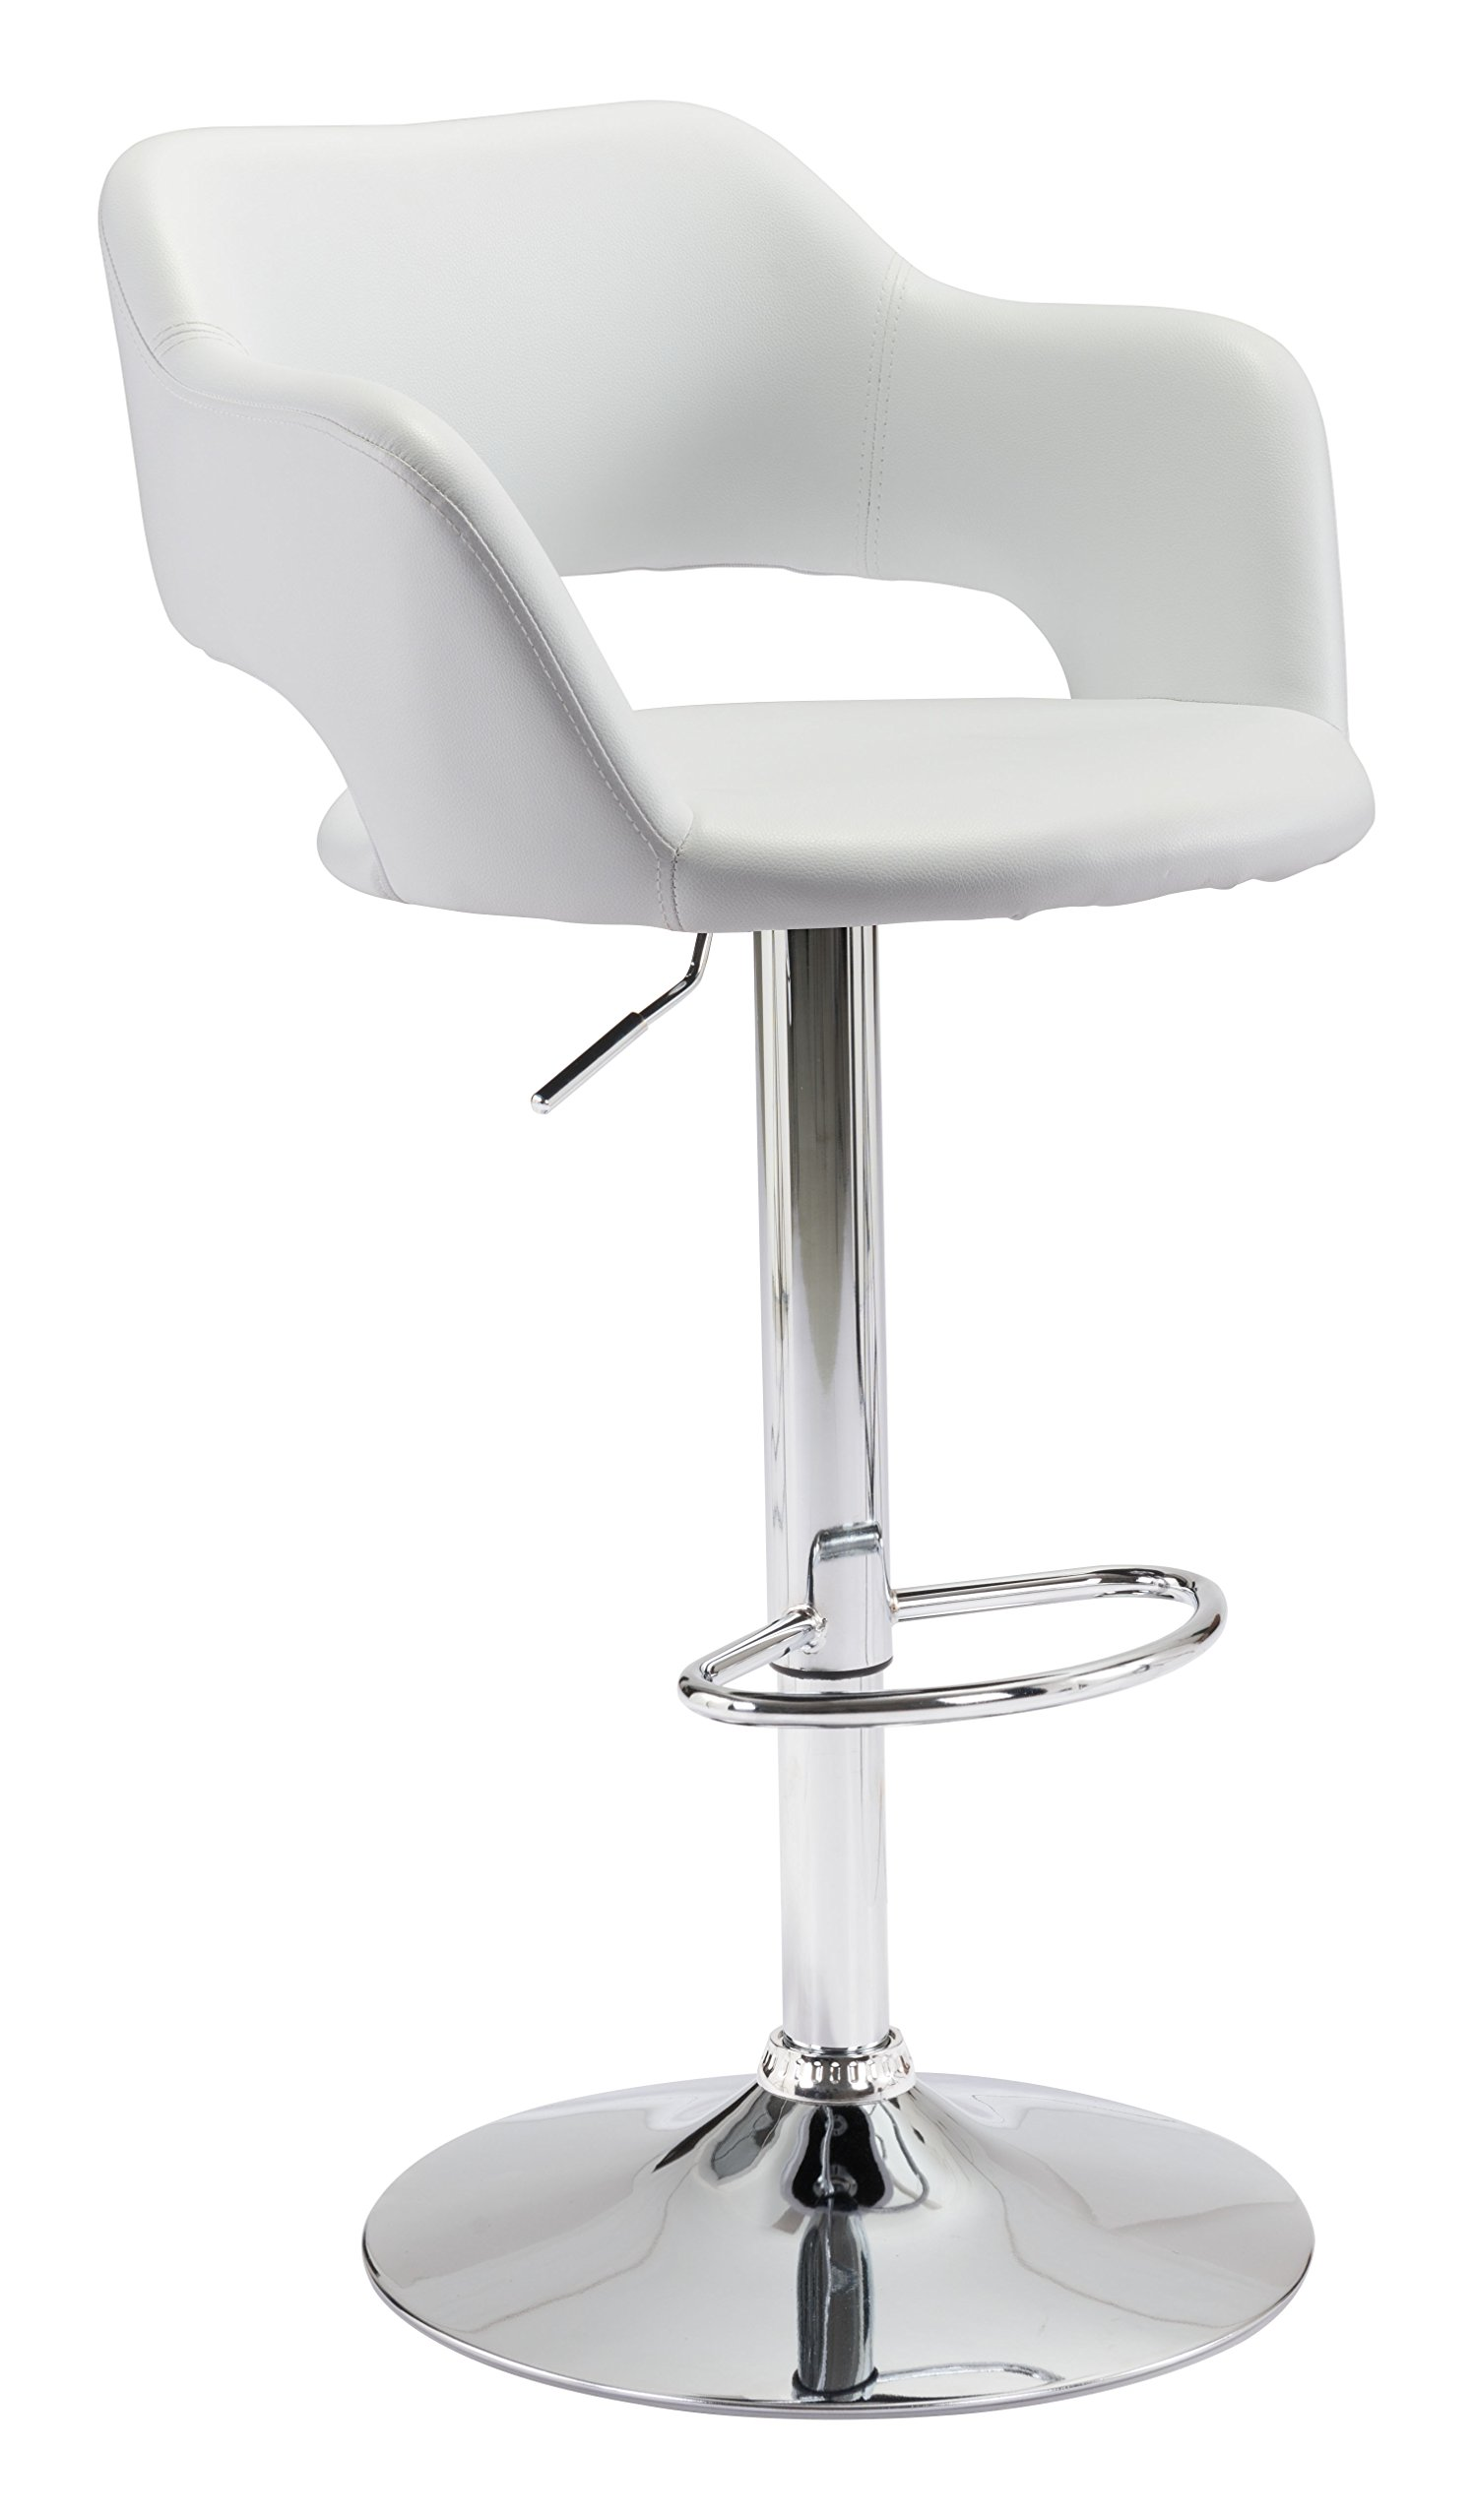 Hysteria Adjustable Stool in White